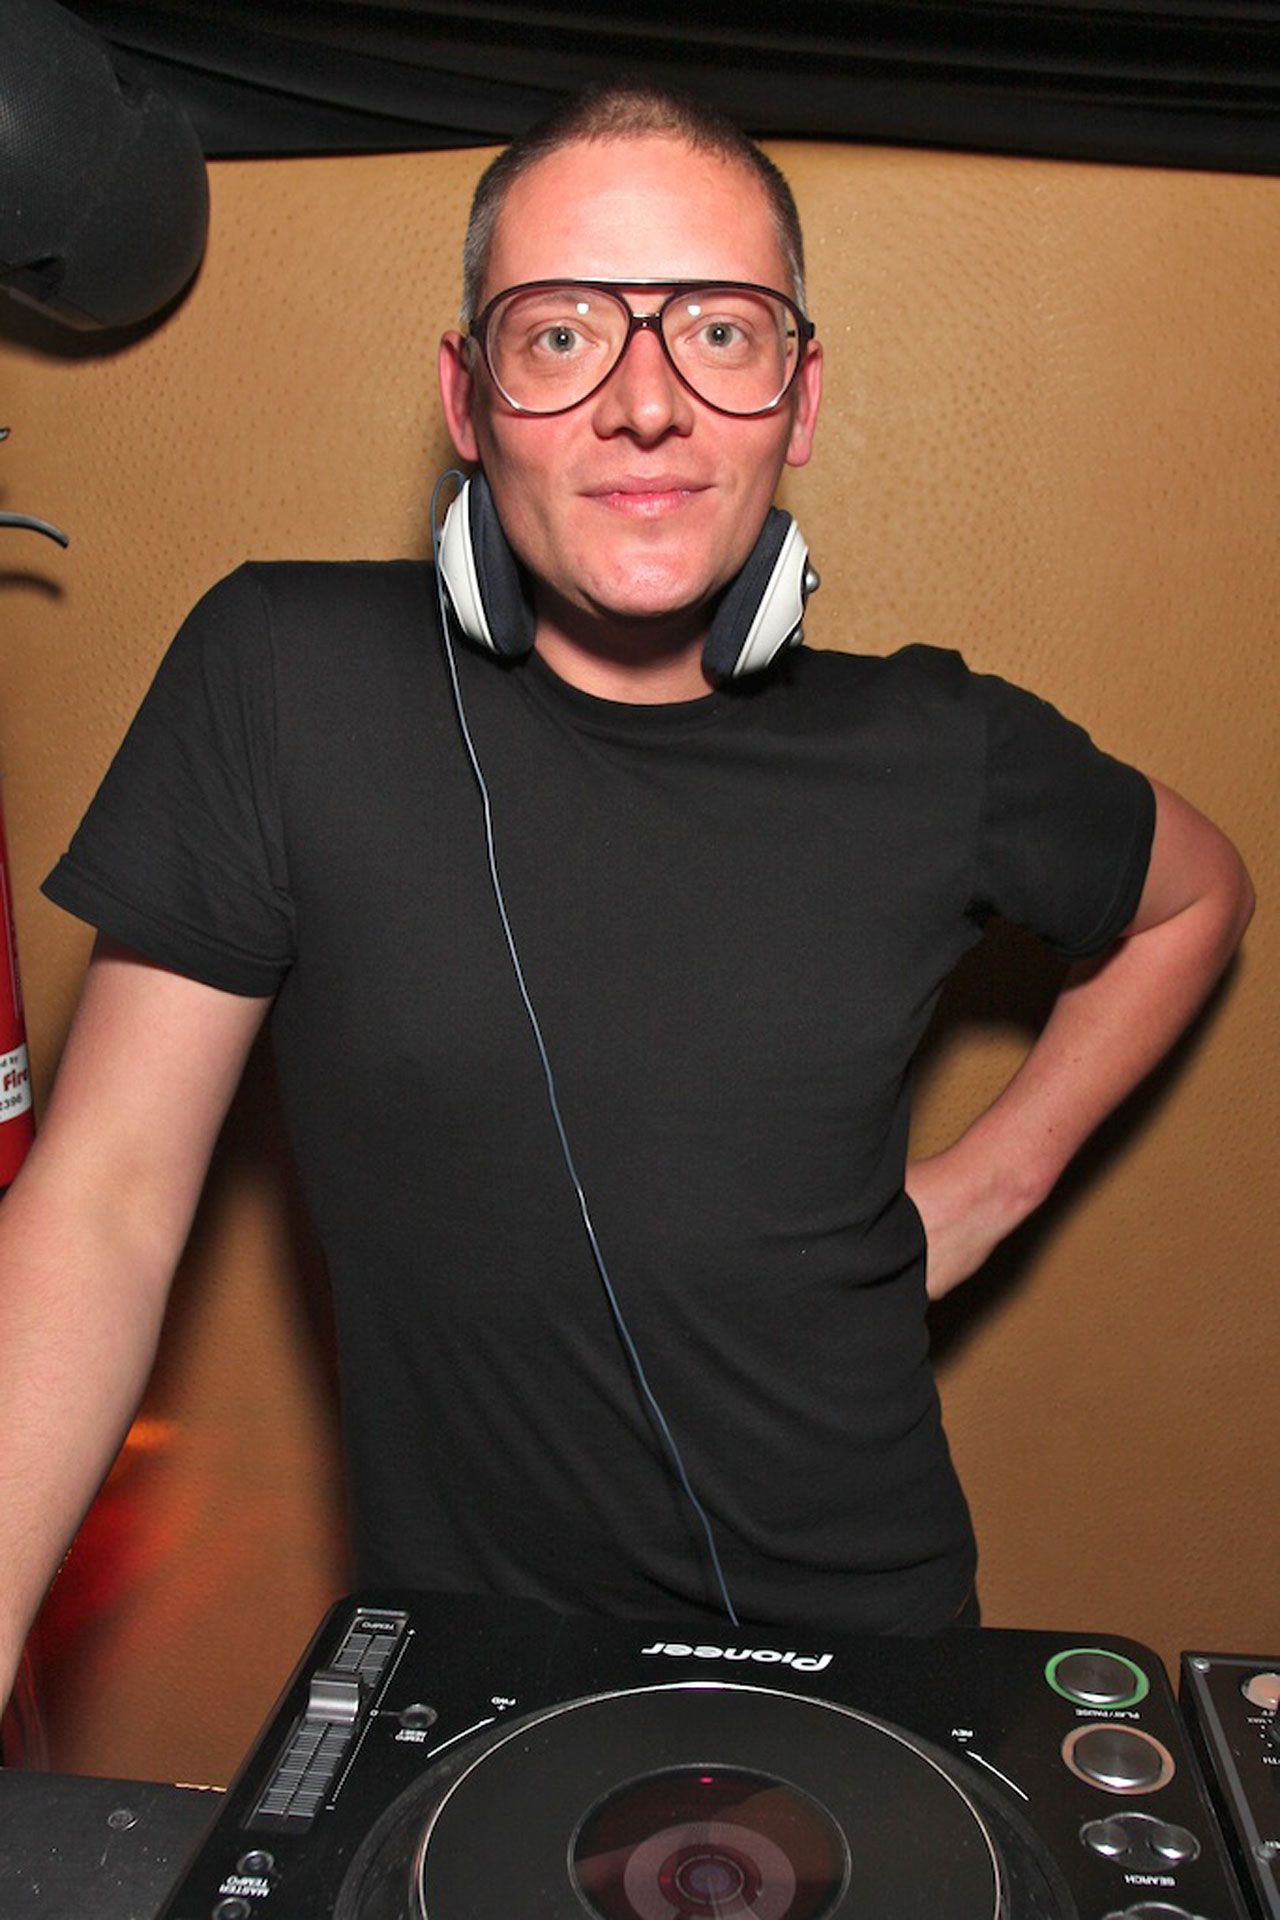 Giles Deacon Is A British Fashion Designer Best Known For His Newlook Playful Designs And Collaboration With High Street Retailer New Look